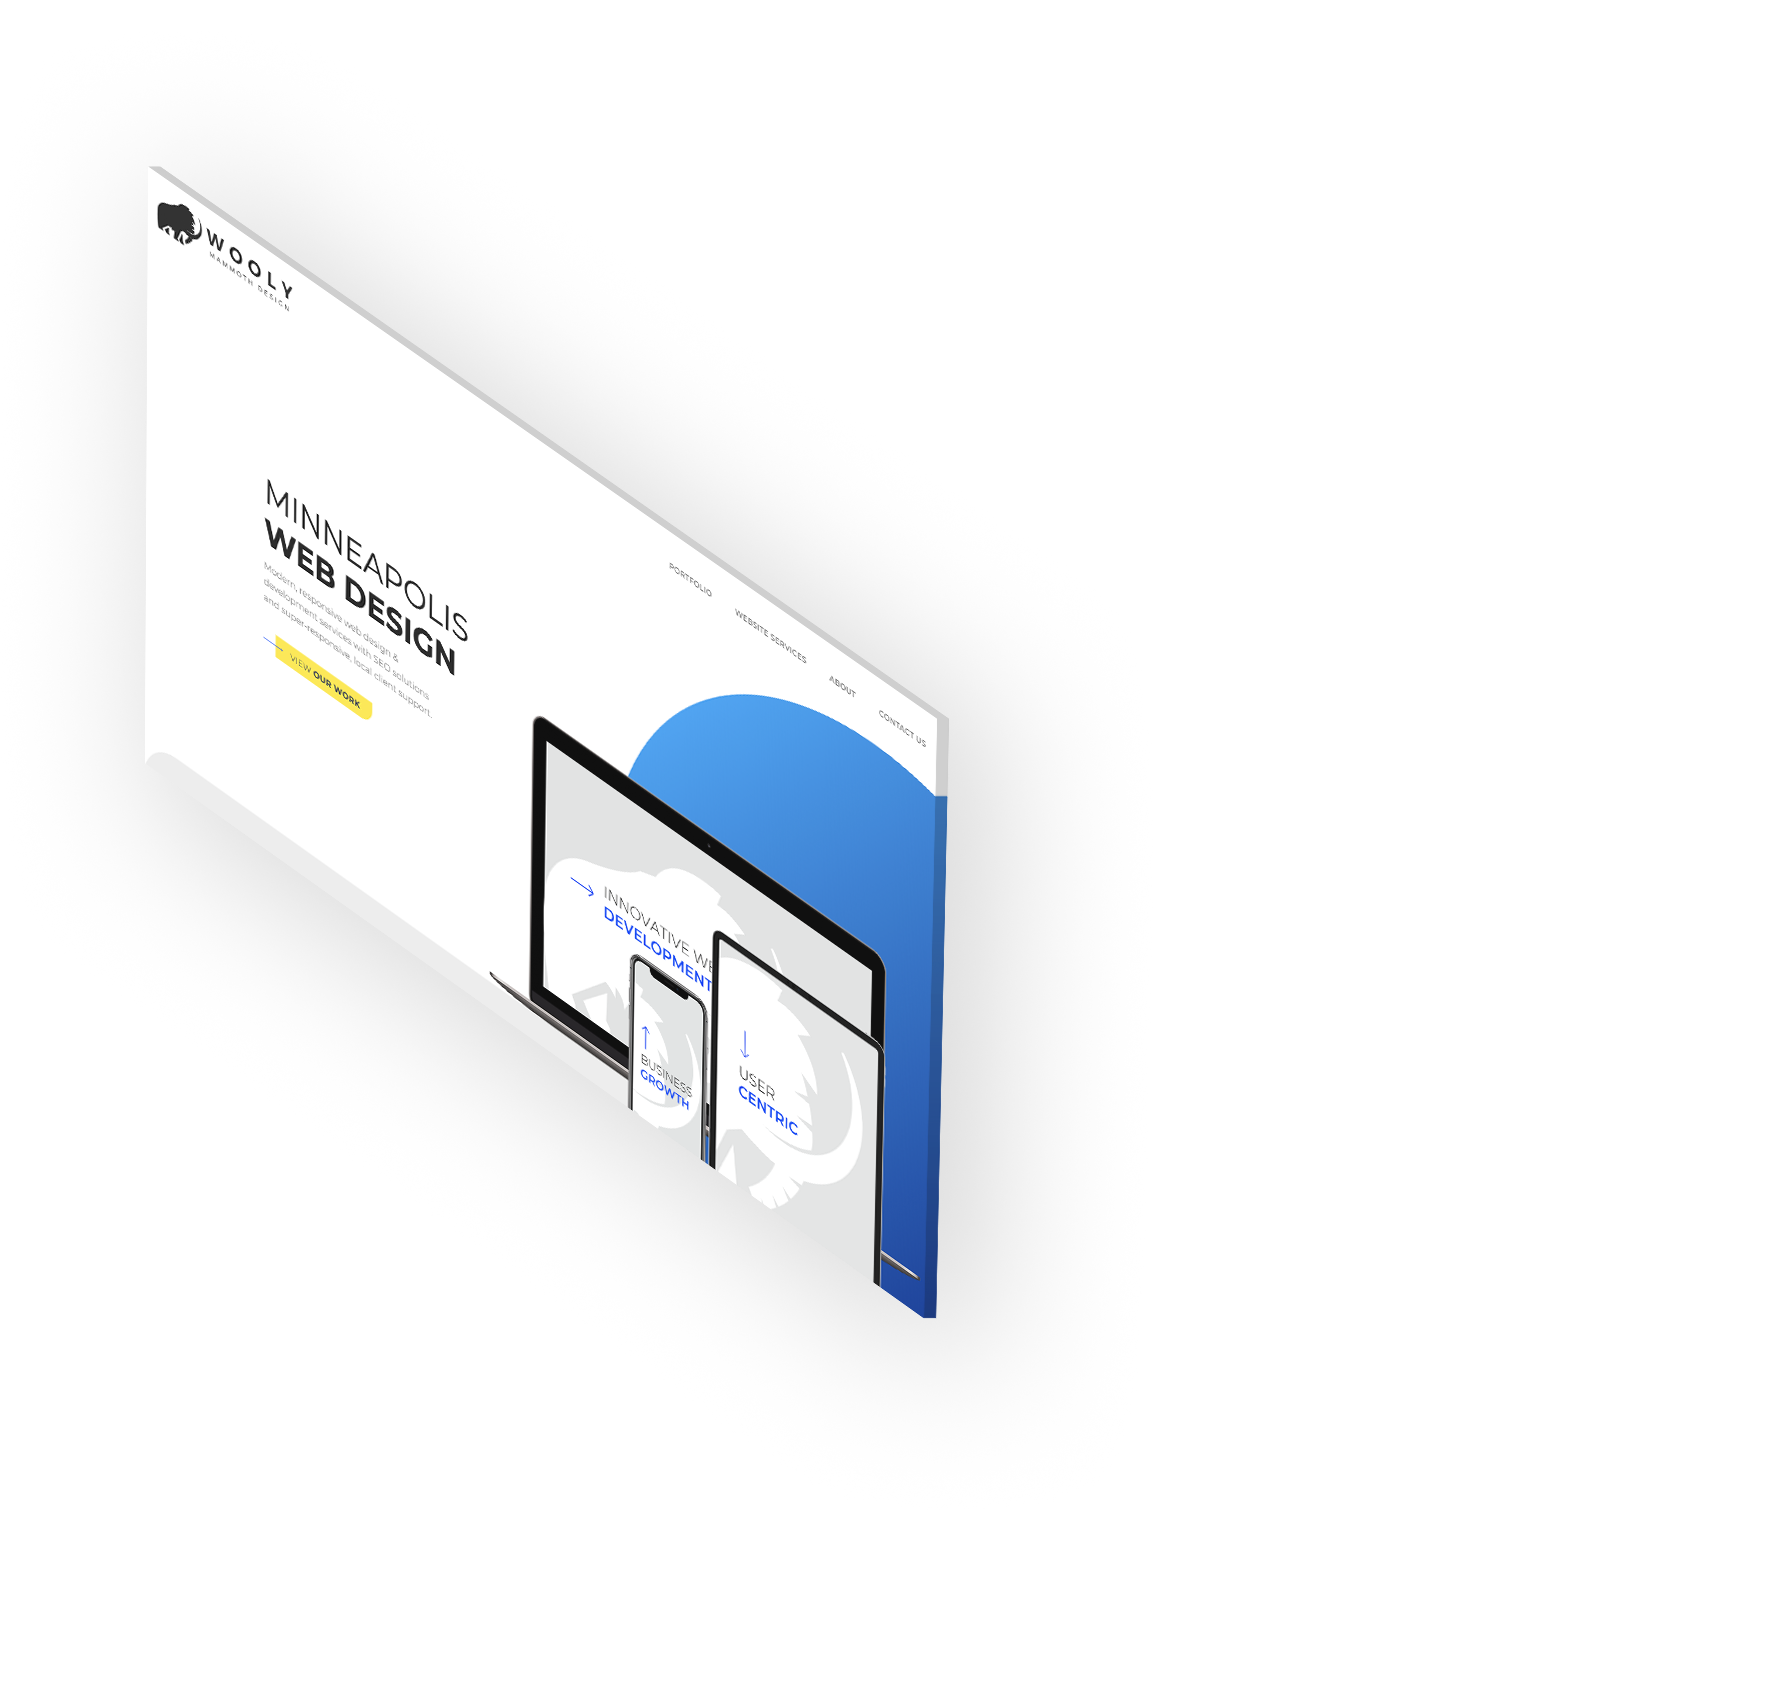 Laptop screen with web design mockup